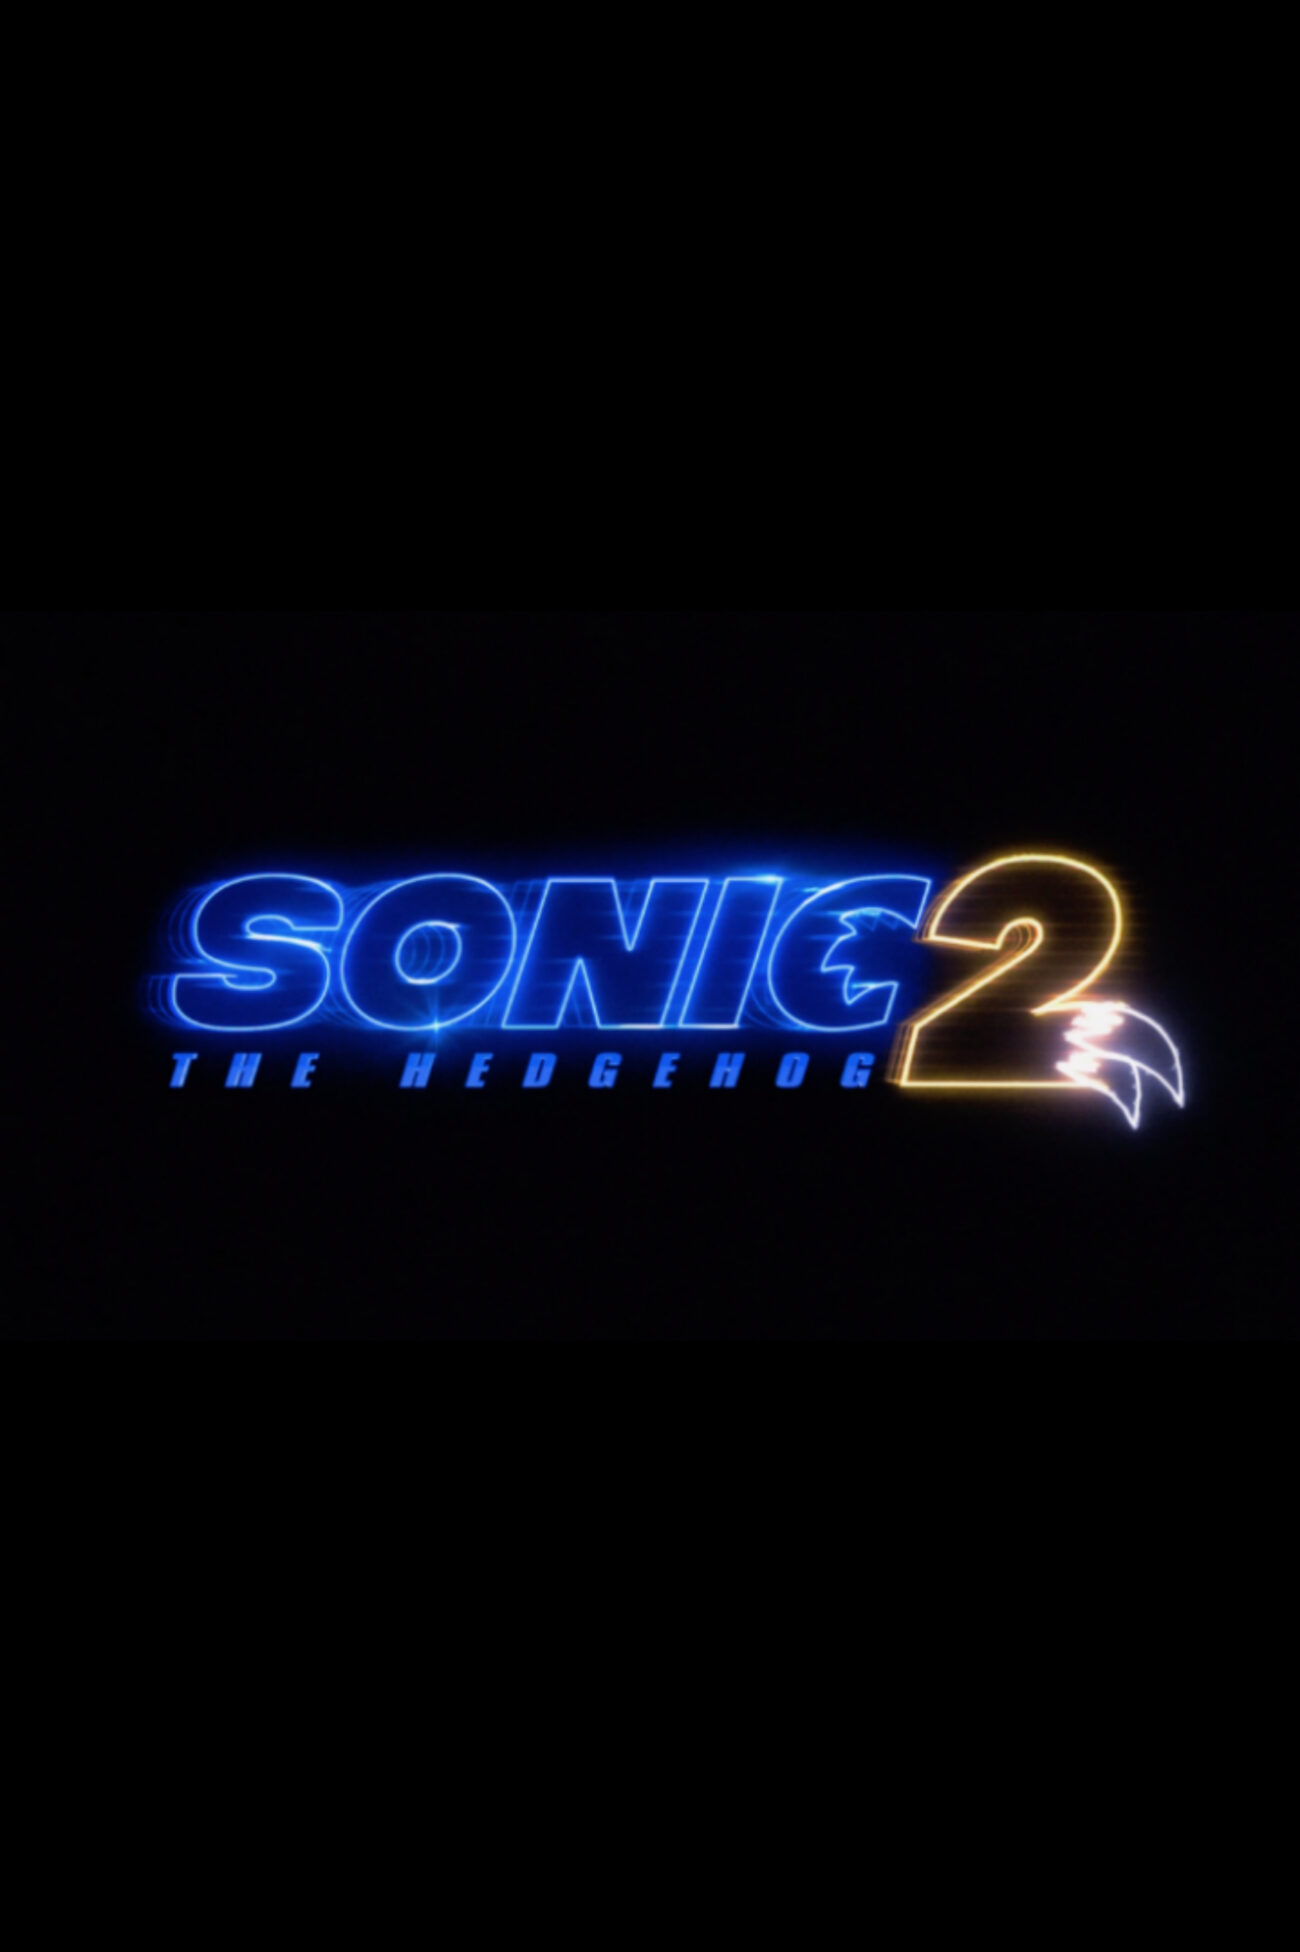 Thanks to a slew of set photos, we now know that Knuckles the Echidna will be in 'Sonic the Hedgehog 2'! But did Paramount get his design right?